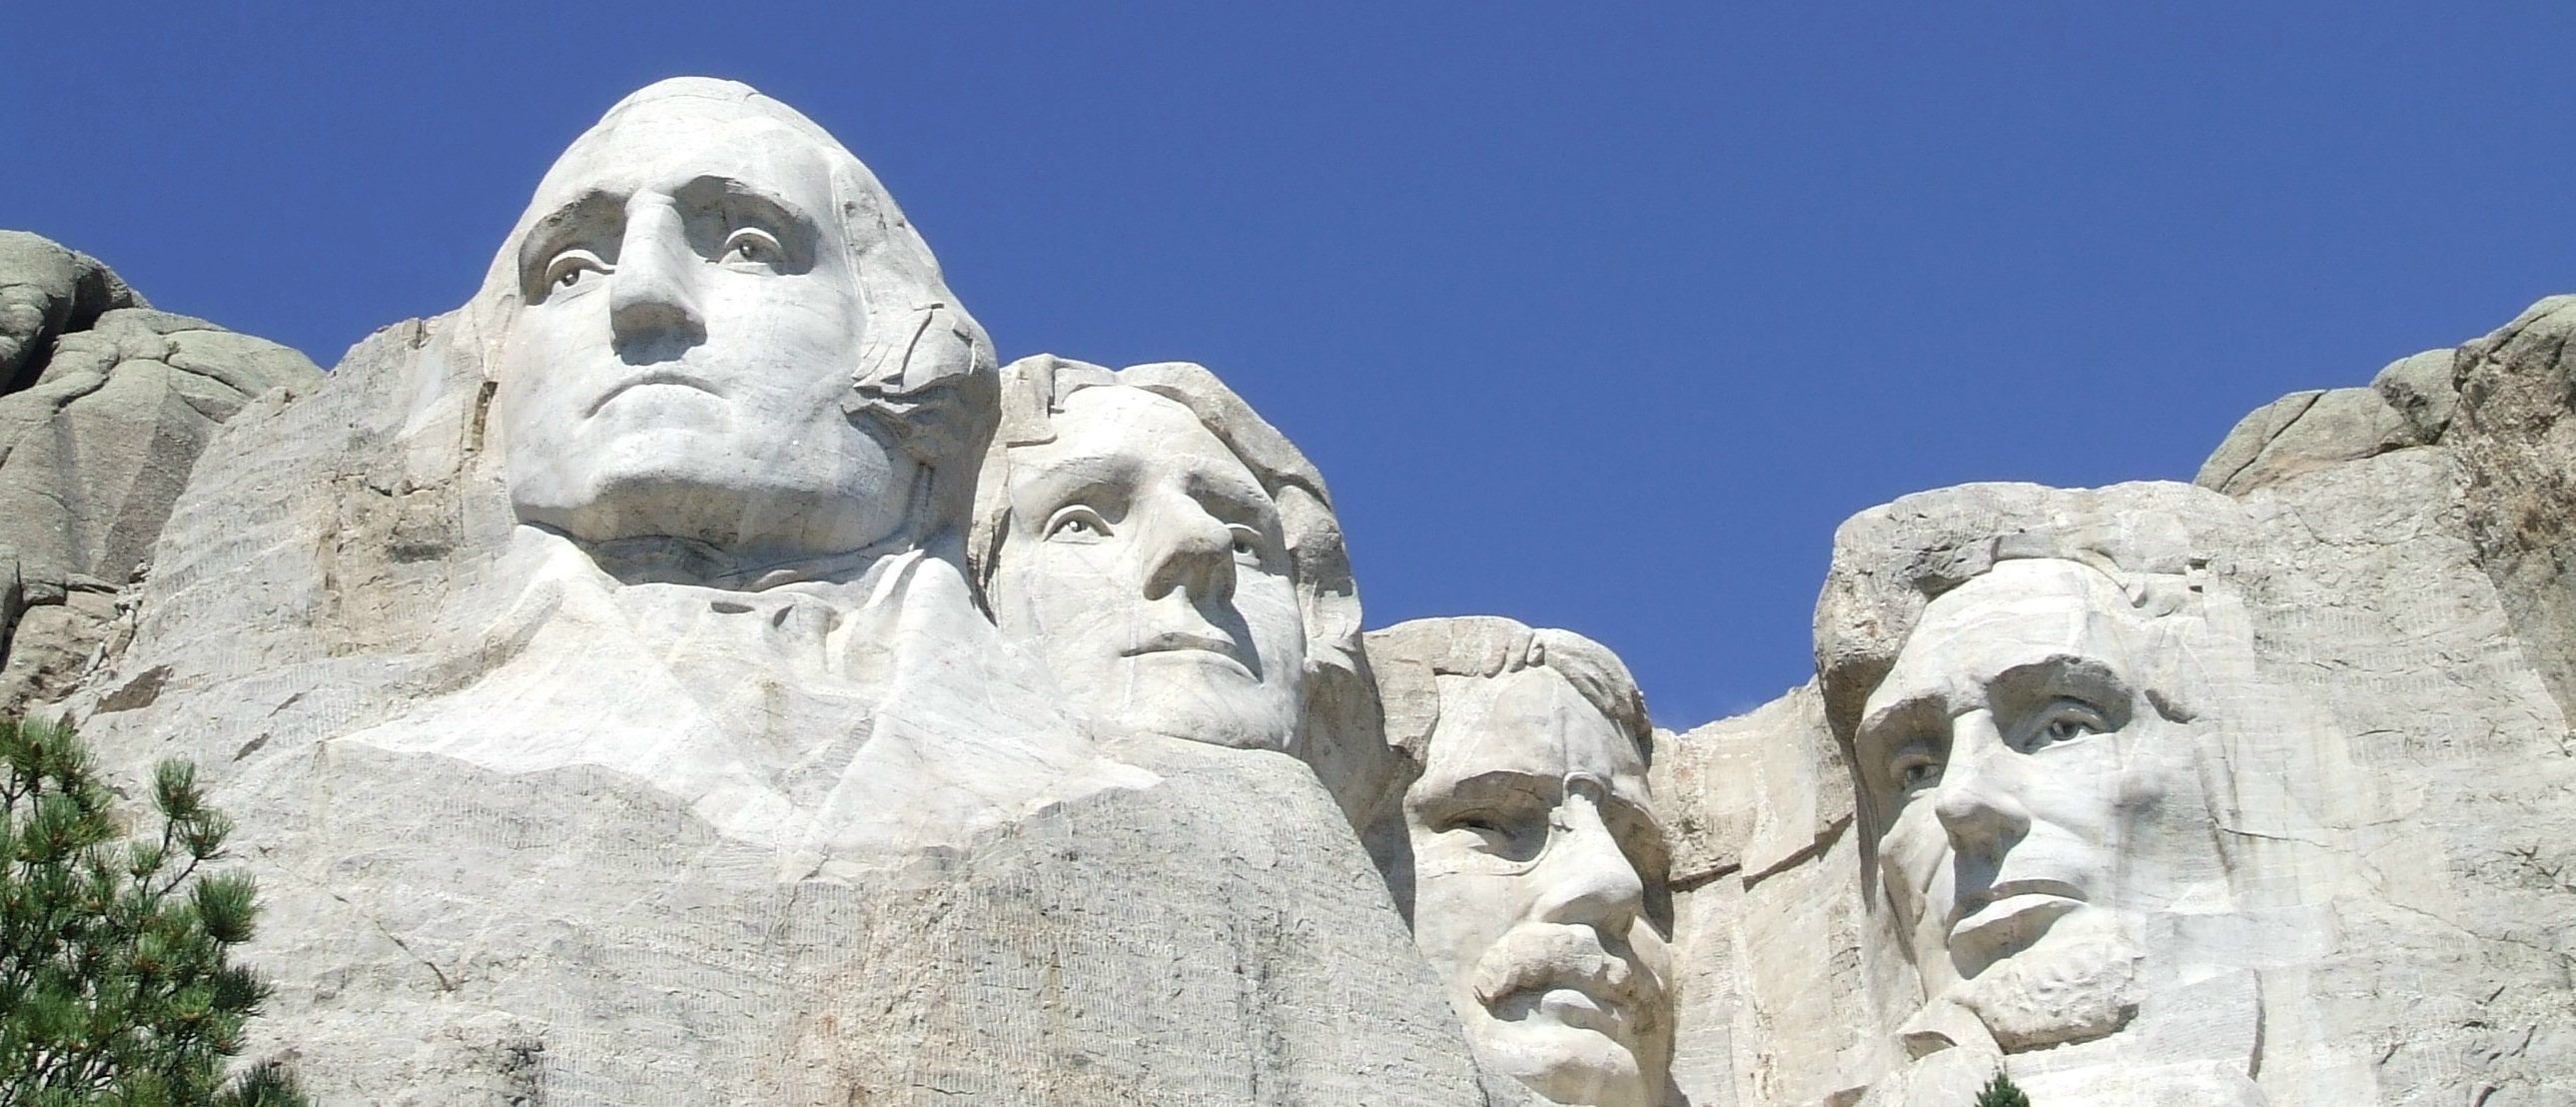 U.S. presidents George Washington, Thomas Jefferson, Theodore Roosevelt and Abraham Lincoln are sculpted on Mount Rushmore National Memorial in the Black Hills region of South Dakota, U.S. in this U.S. National Park Service photo taken on April 12, 2013. Courtesy NPS/Handout via REUTERS ATTENTION EDITORS - THIS IMAGE WAS PROVIDED BY A THIRD PARTY. EDITORIAL USE ONLY.